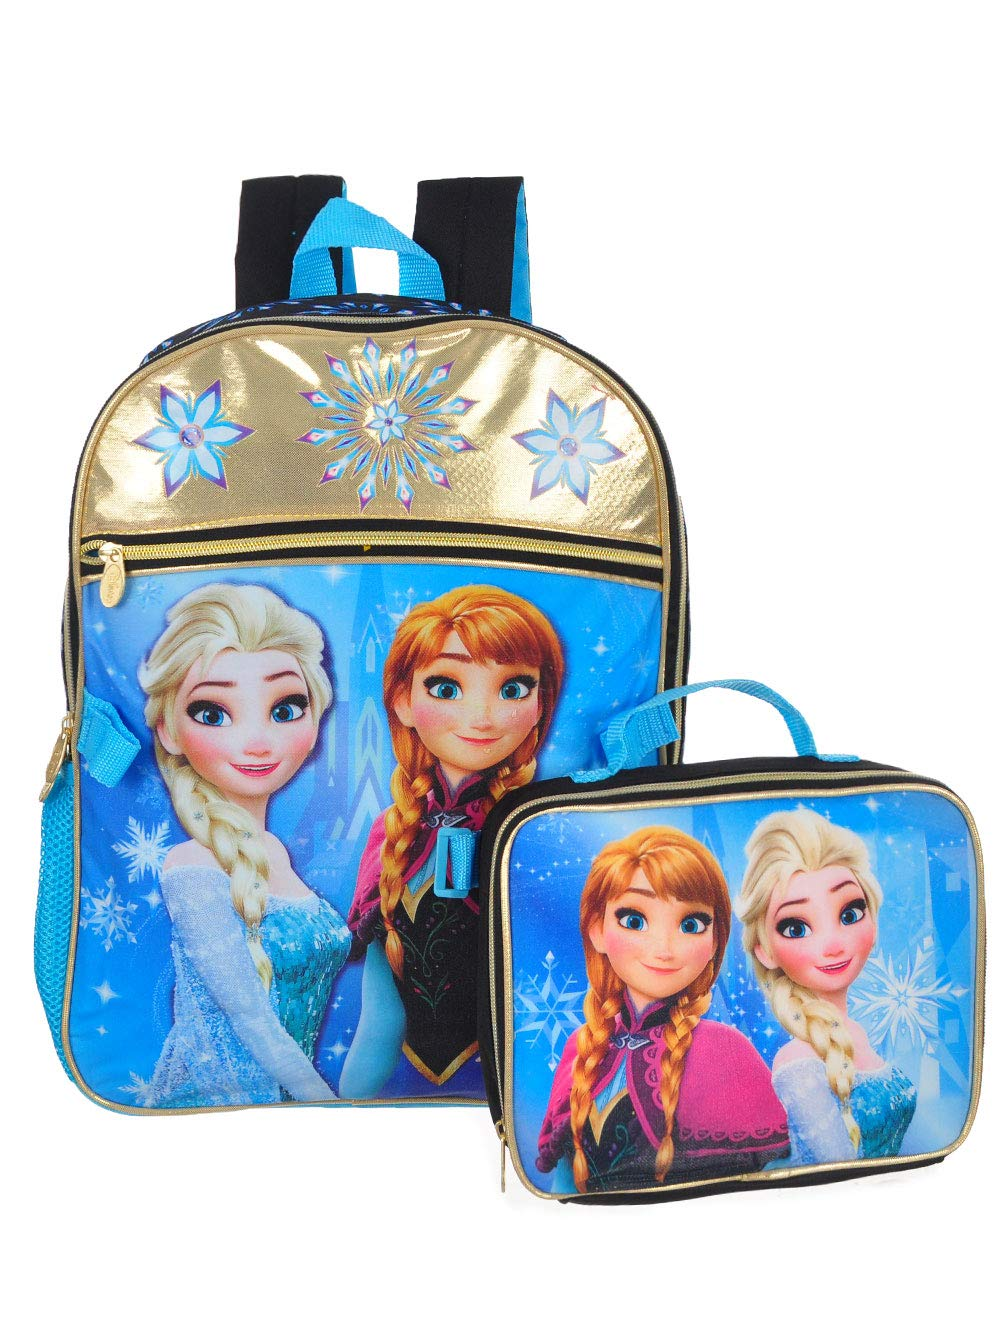 Disney Girls Frozen Black//Gold Backpack with Lunch Kit Blue One Size Global Design Concepts Inc FZ30389-SC-BL00